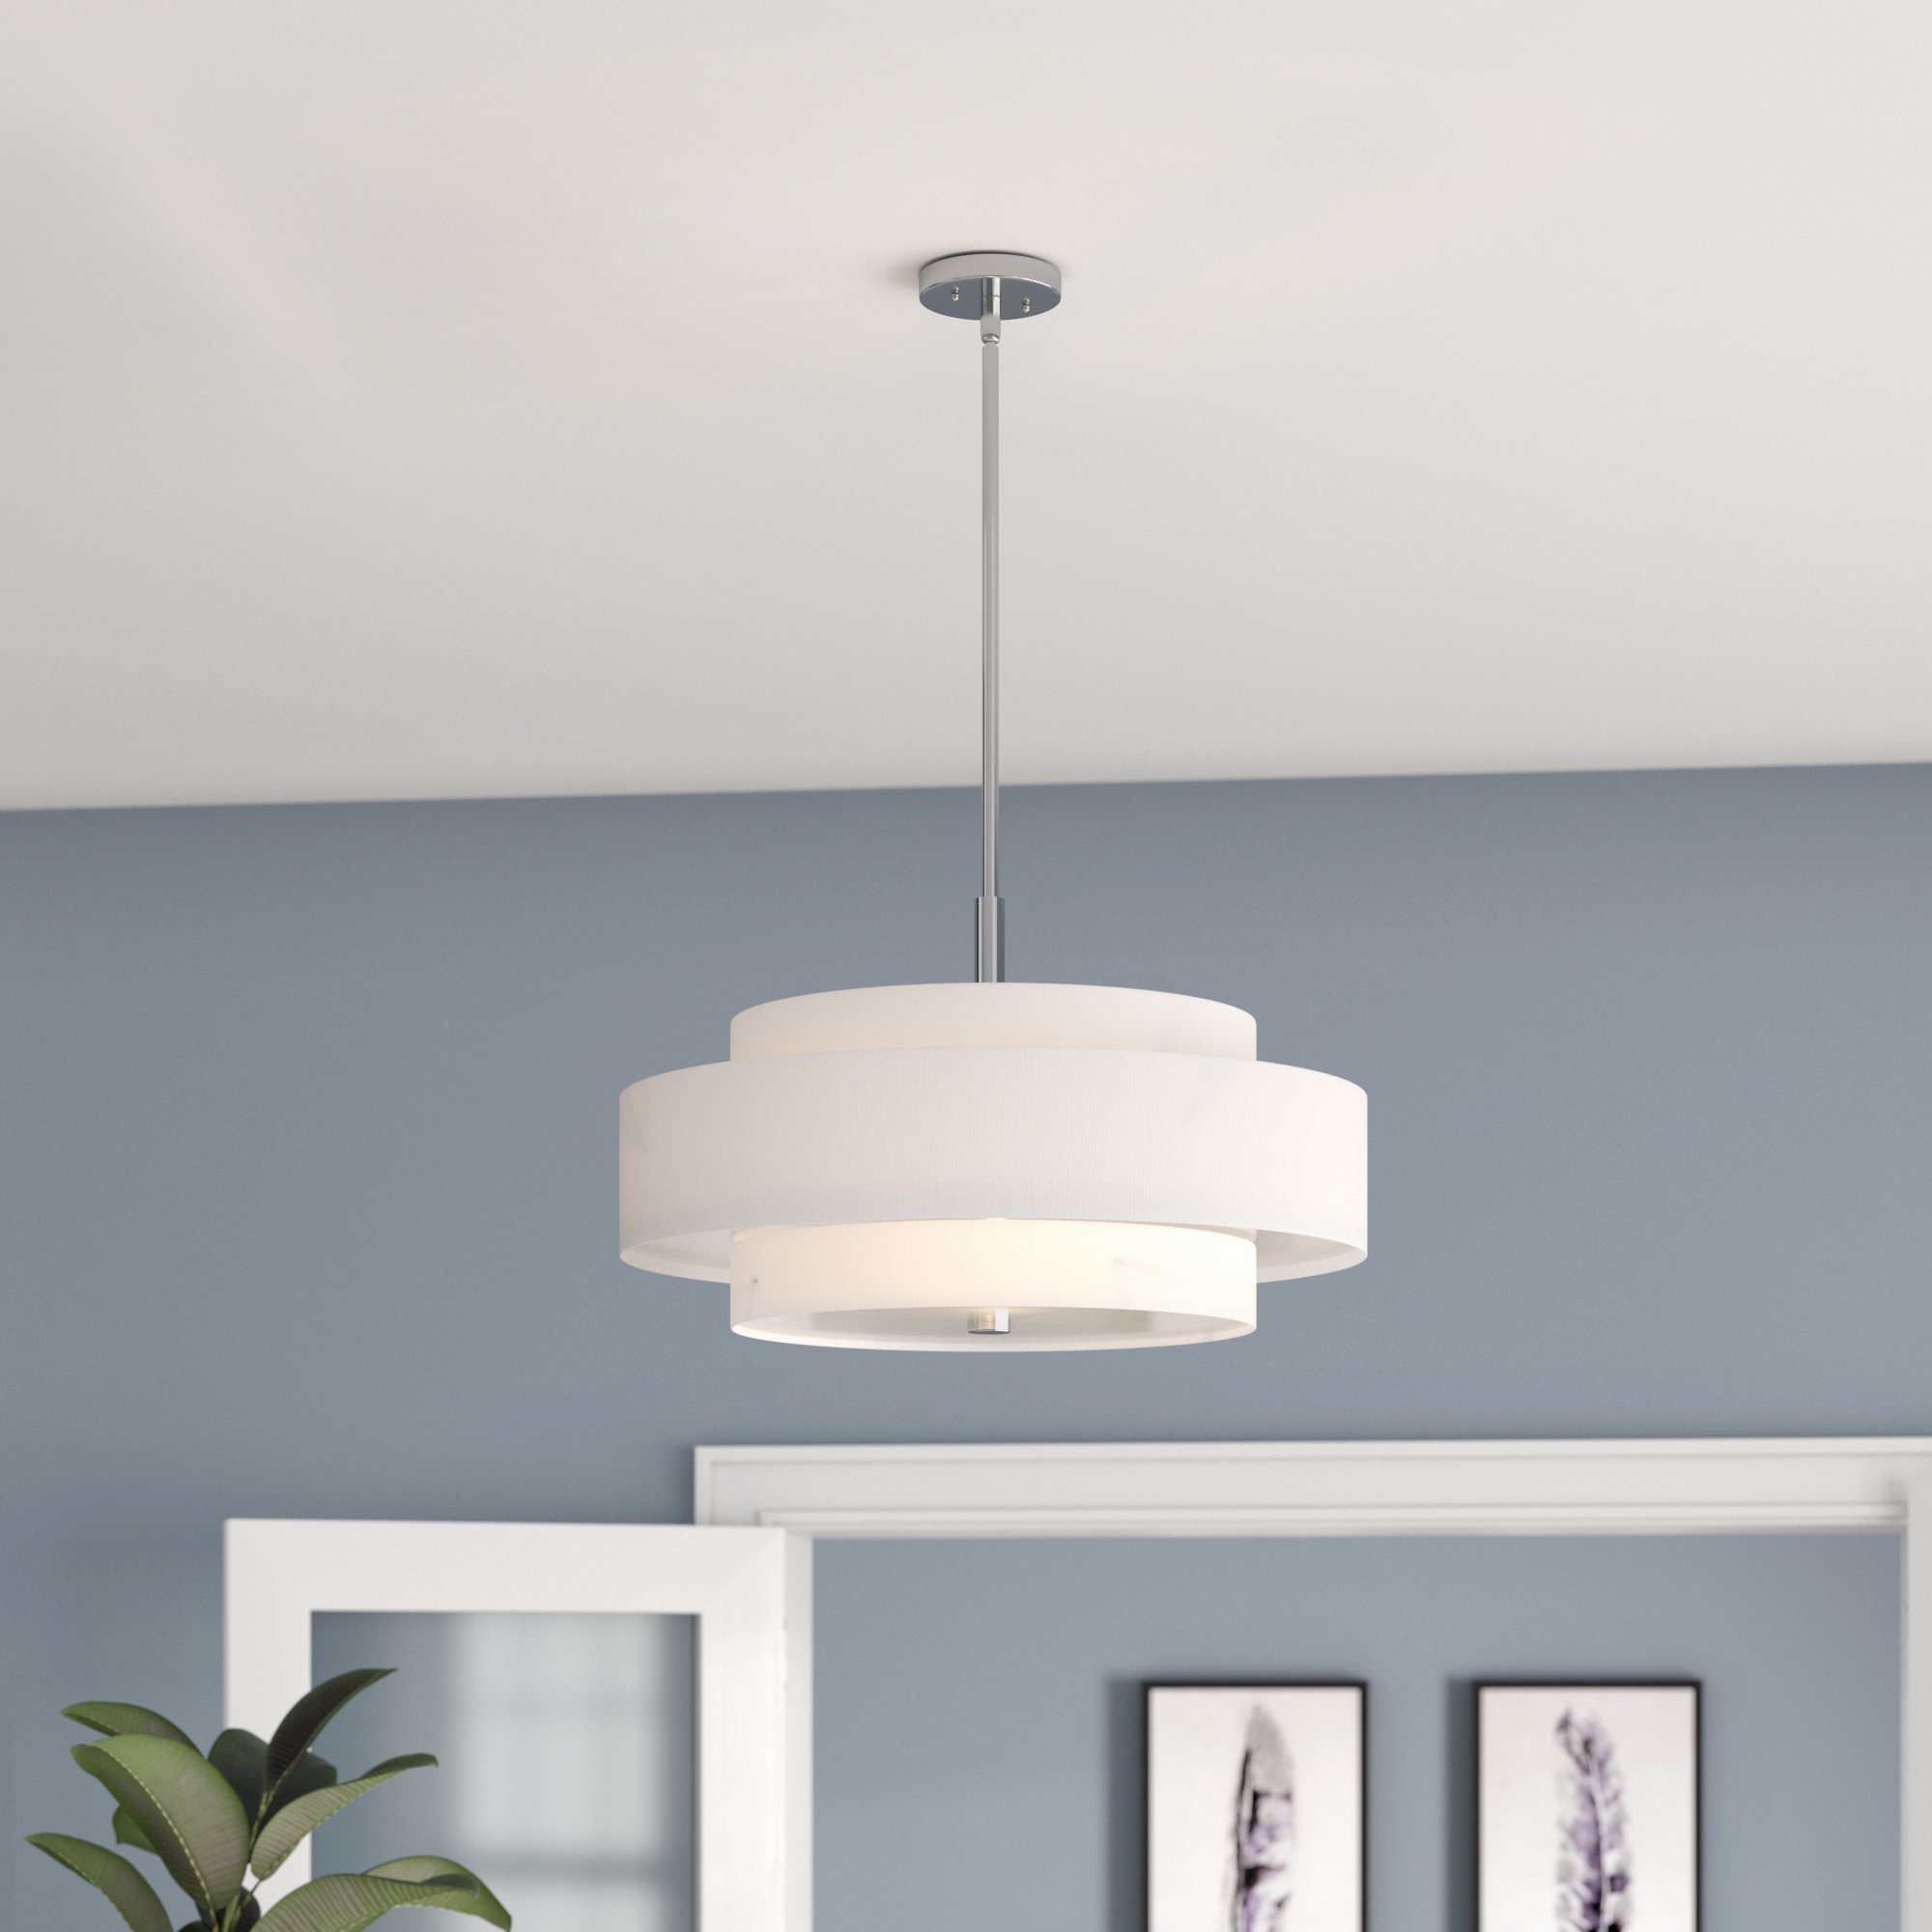 Drum Chandeliers Sale – Up To 65% Off Until September 30th Throughout Breithaup 7 Light Drum Chandeliers (View 11 of 30)